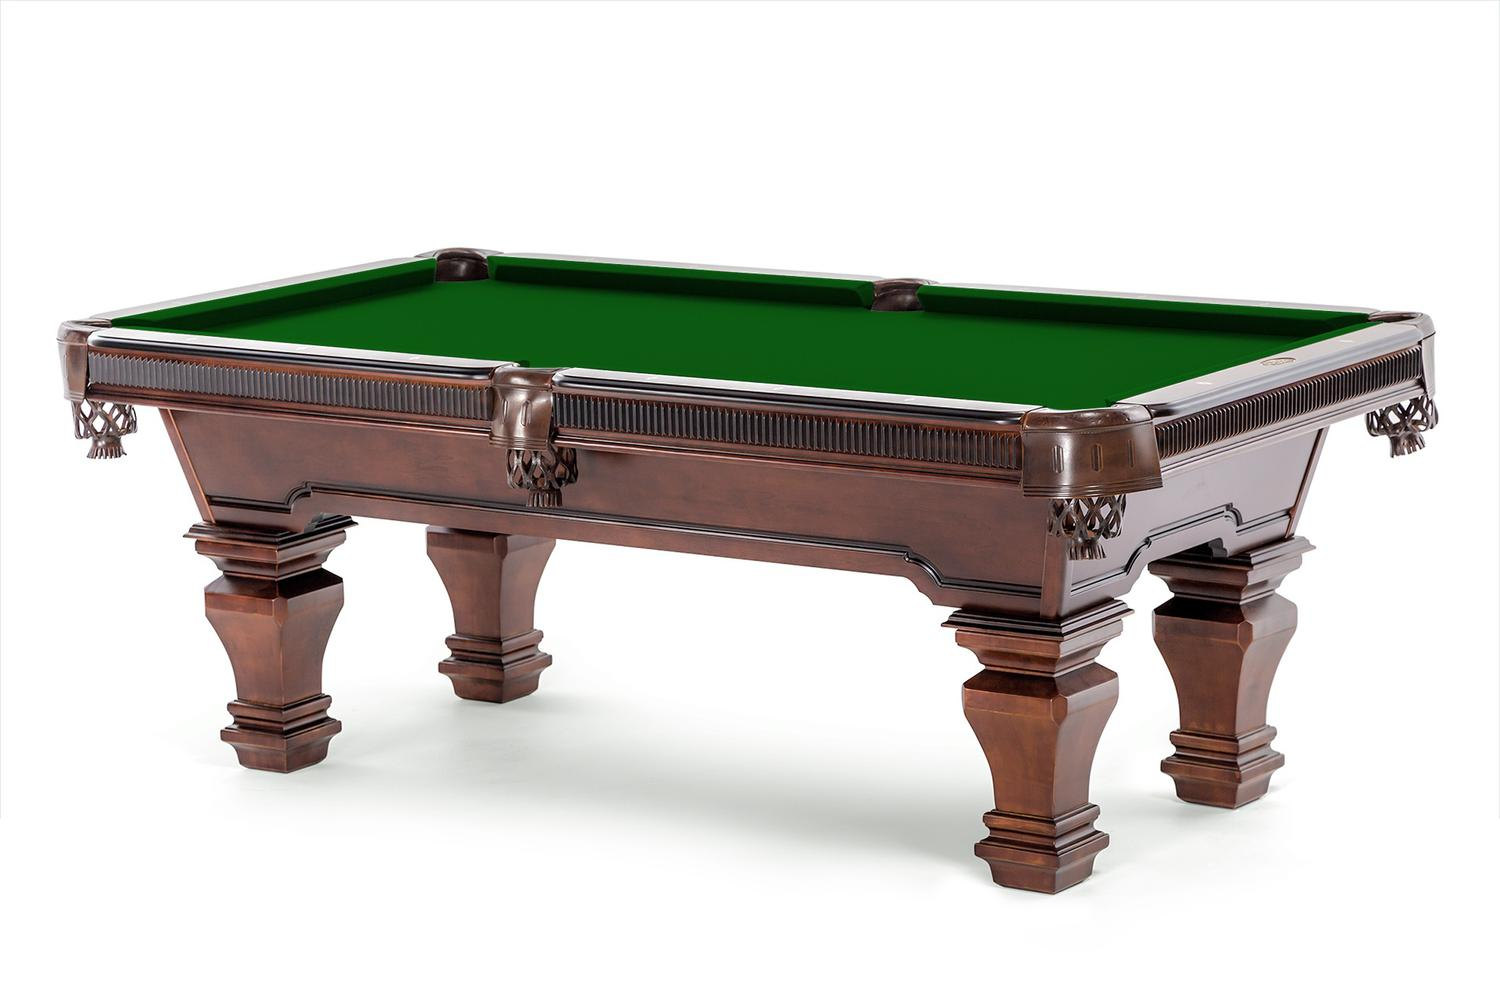 Incredible Spencer Marston Stratford Pool Table Download Free Architecture Designs Itiscsunscenecom